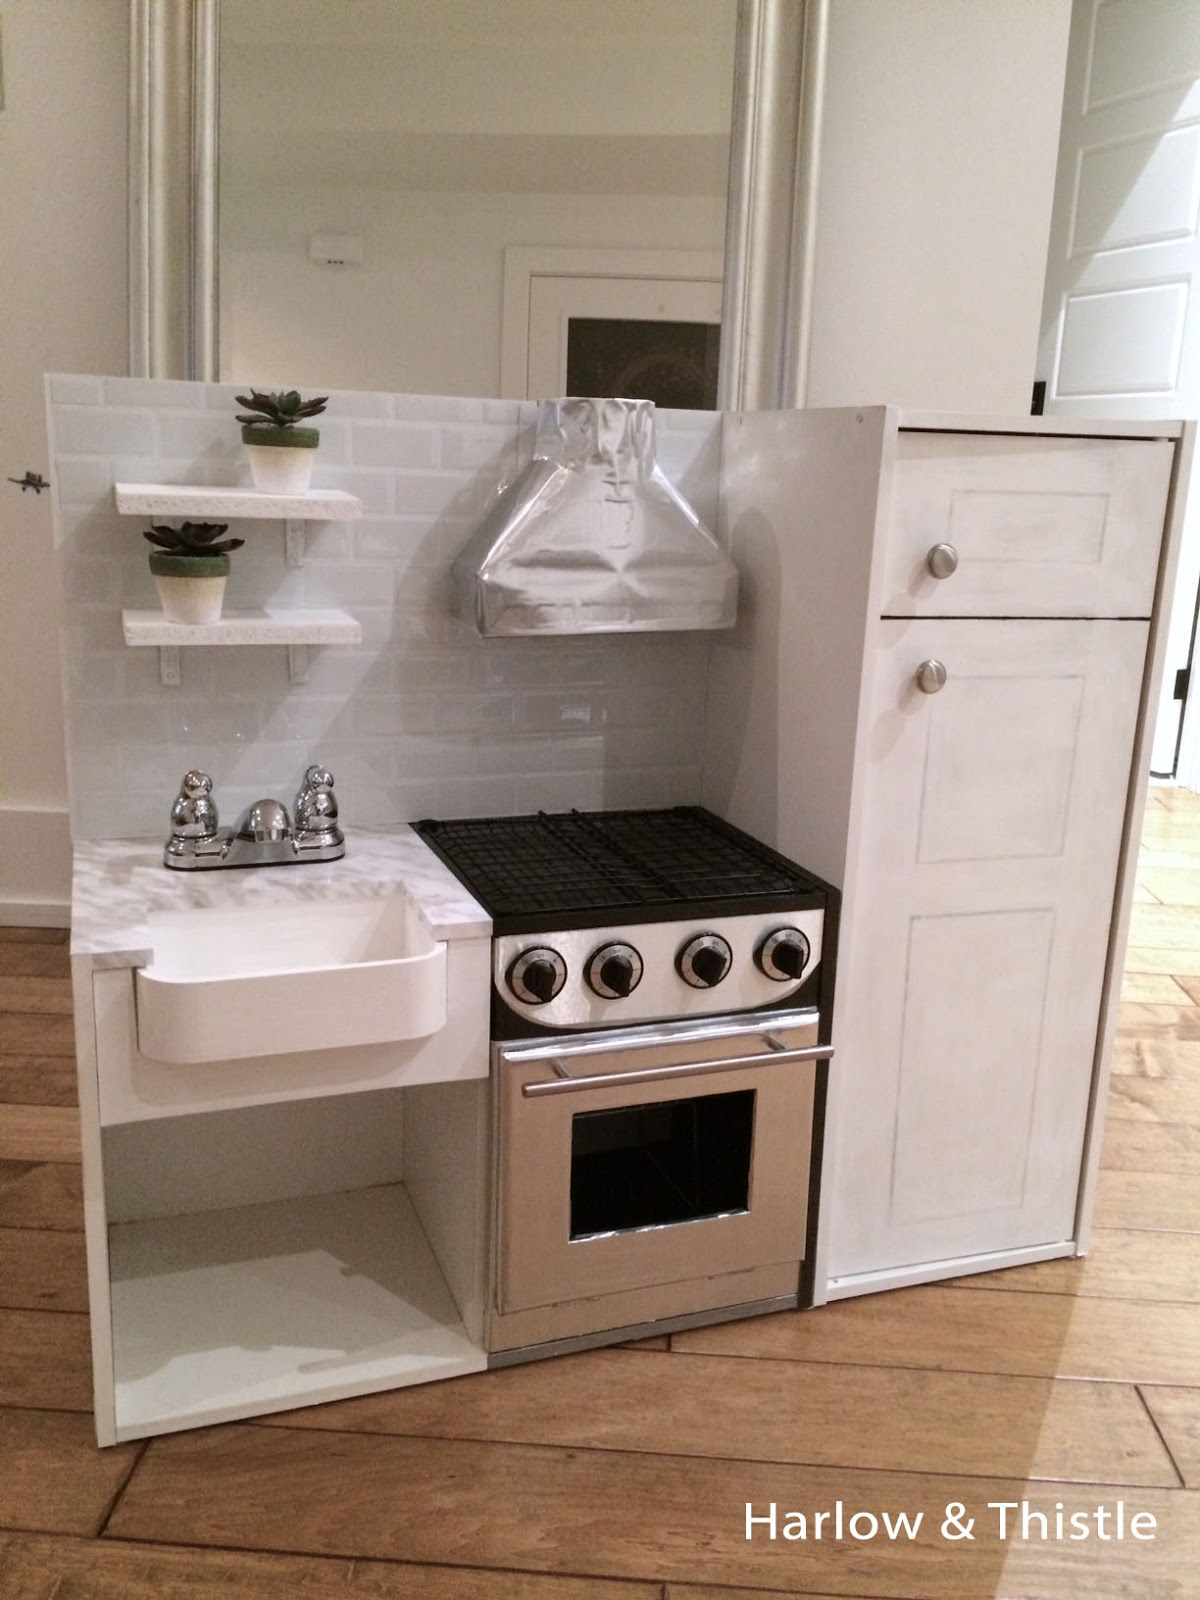 Diy Play Kitchen Harlow Thistle Home Design